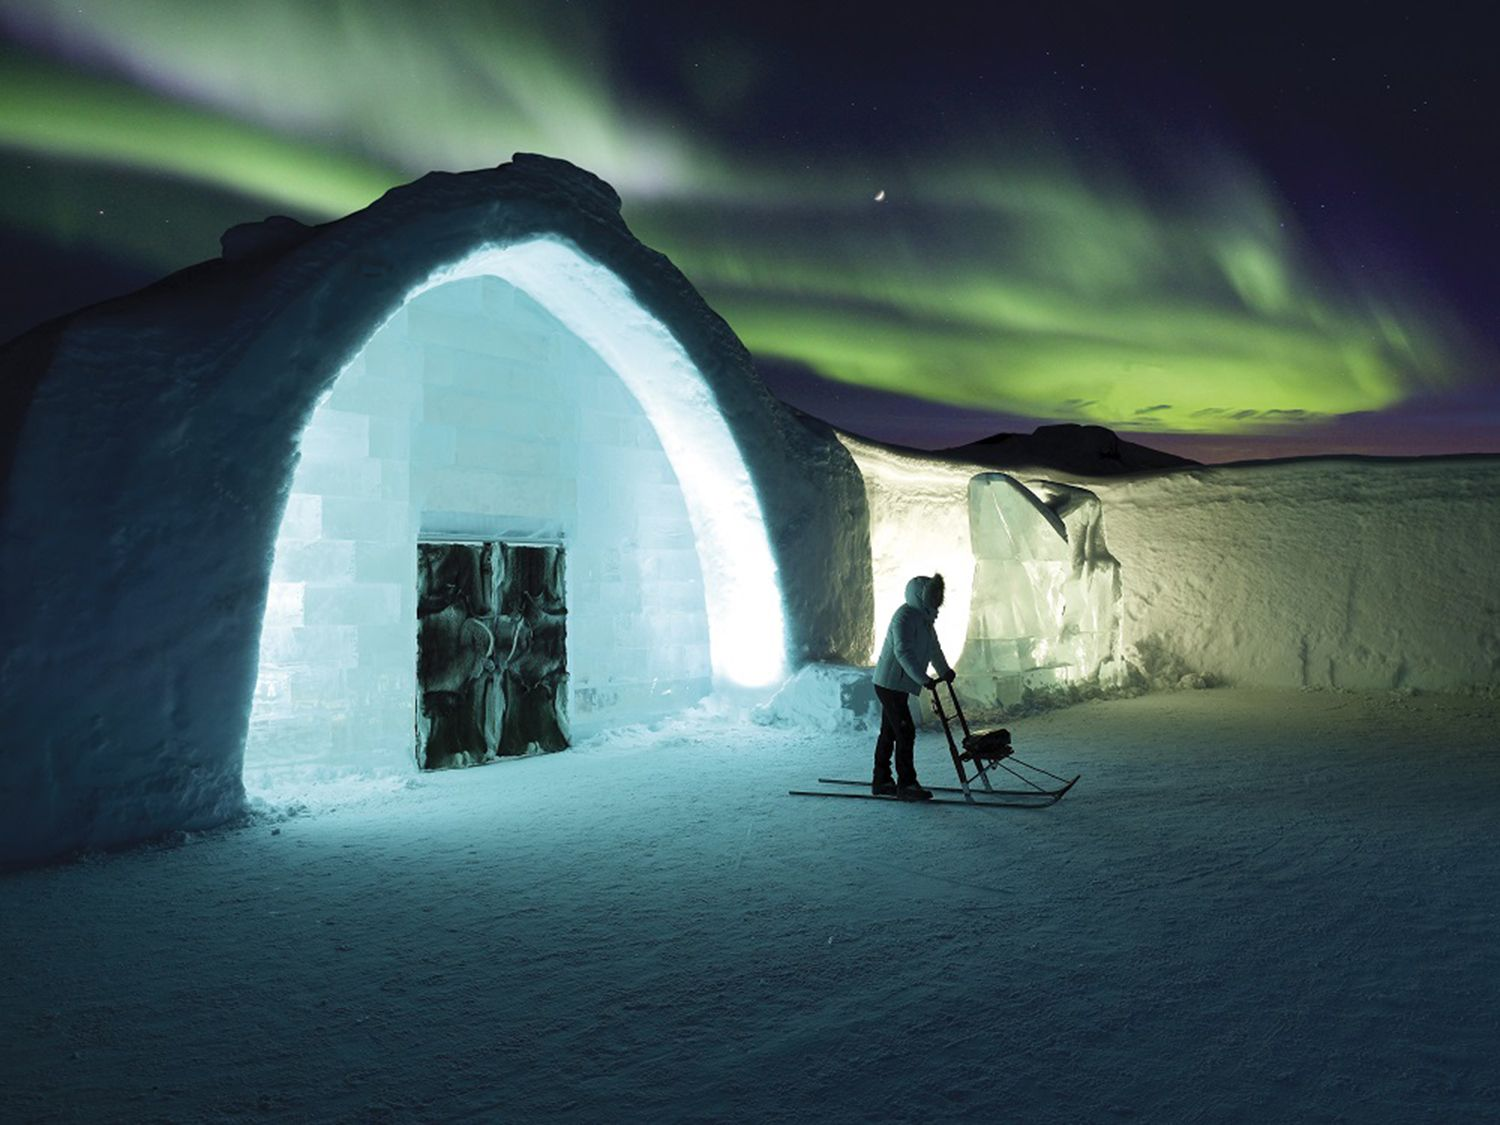 Stay at the world's most unusual hotel on our exclusive tour of Swedish Lapland